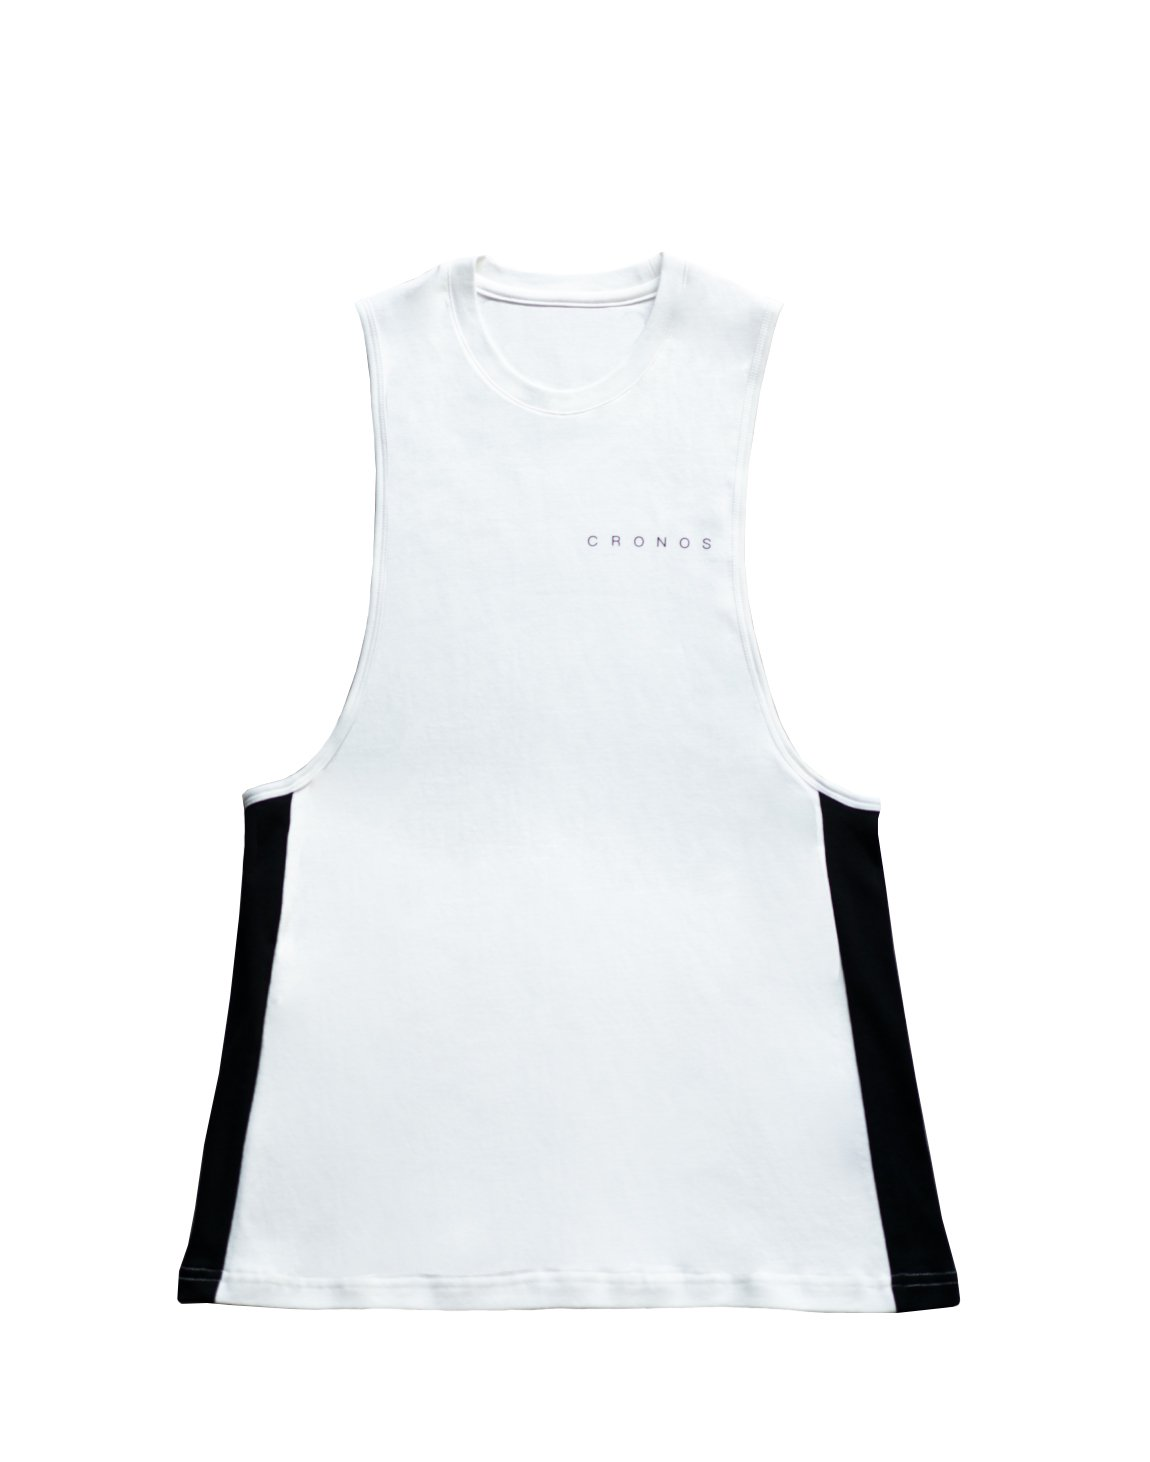 <img class='new_mark_img1' src='https://img.shop-pro.jp/img/new/icons1.gif' style='border:none;display:inline;margin:0px;padding:0px;width:auto;' />FRONT FONT LOGO TANK TOP【WHITE】